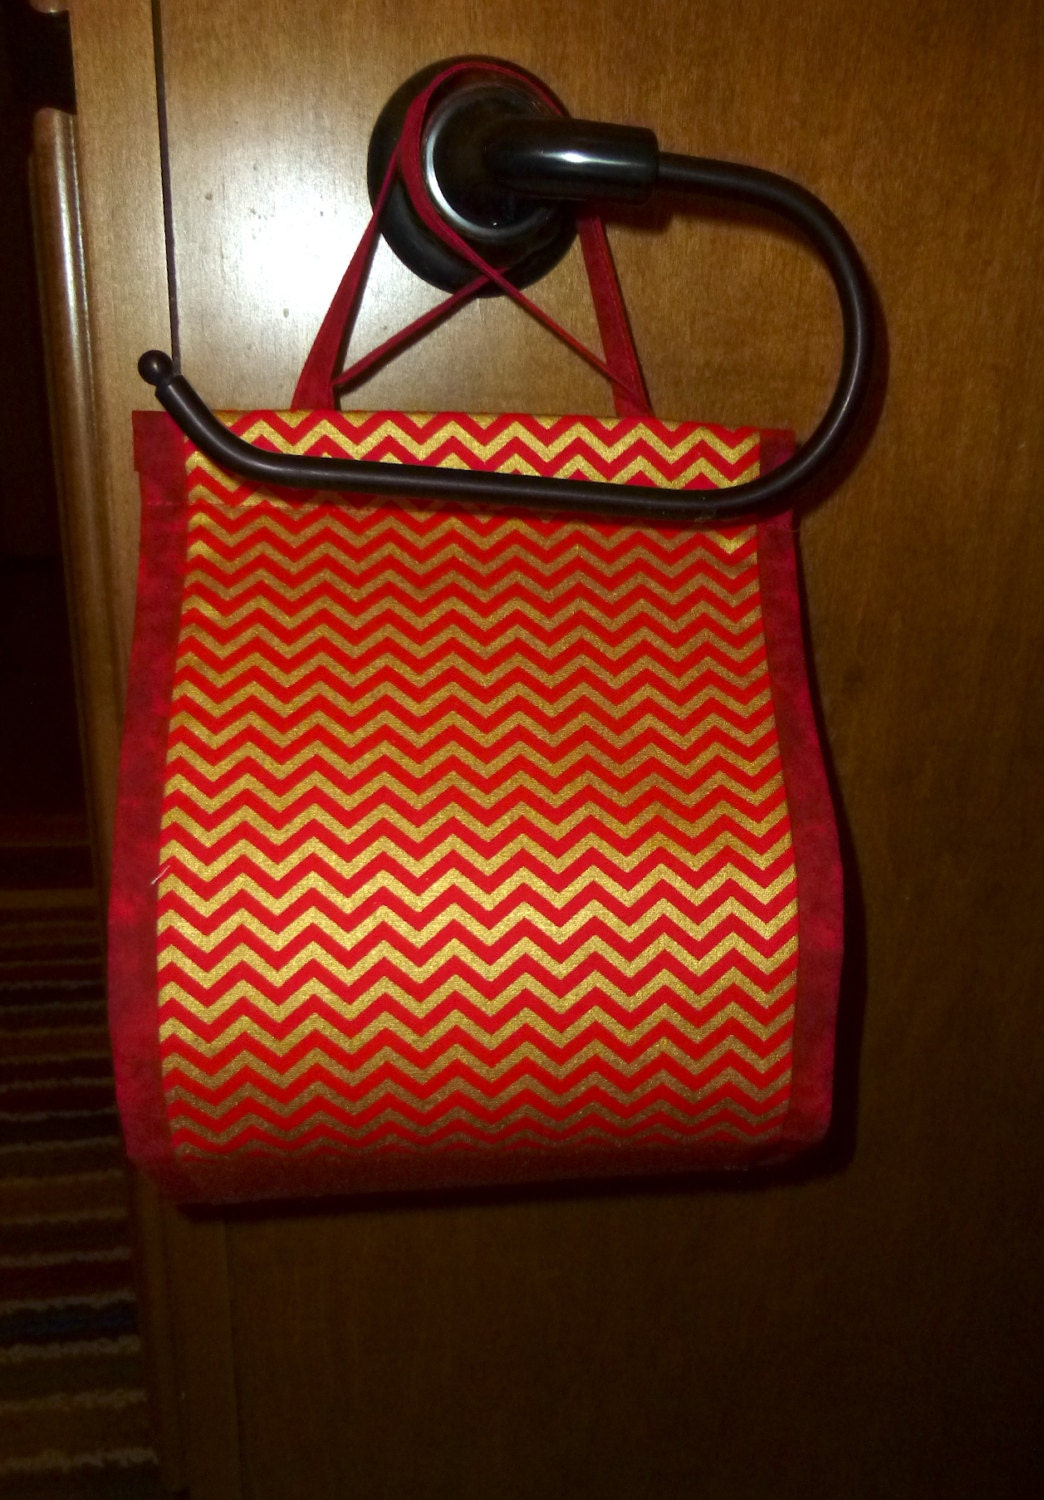 Toilet Paper Holder Chevron Spare Roll Toilet By Just2dangcute